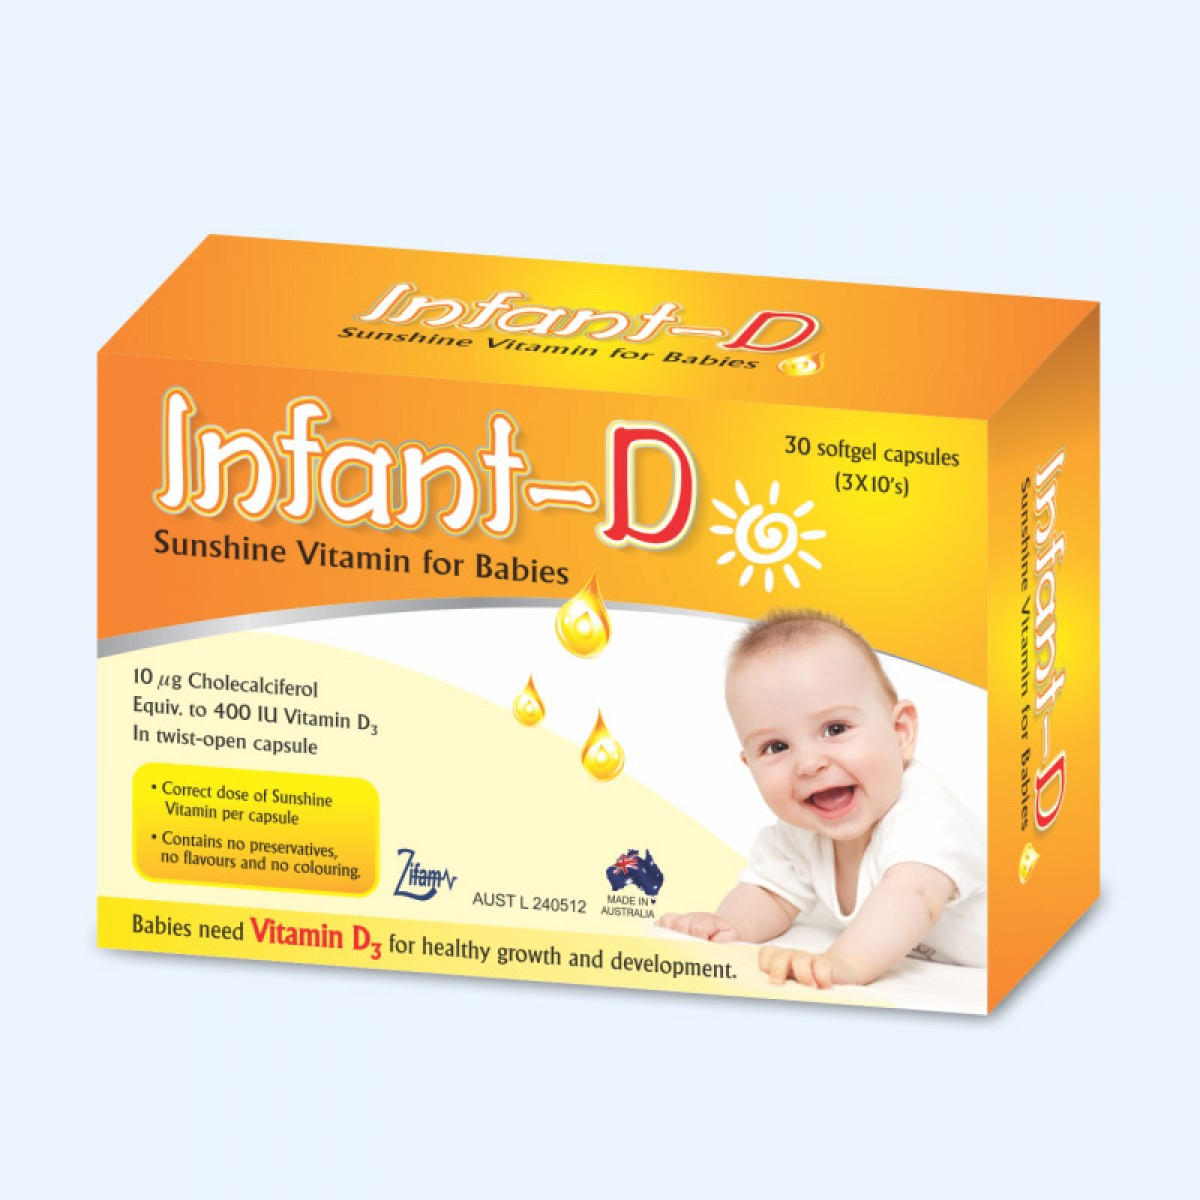 Vitamin D for babies. Need or not 60